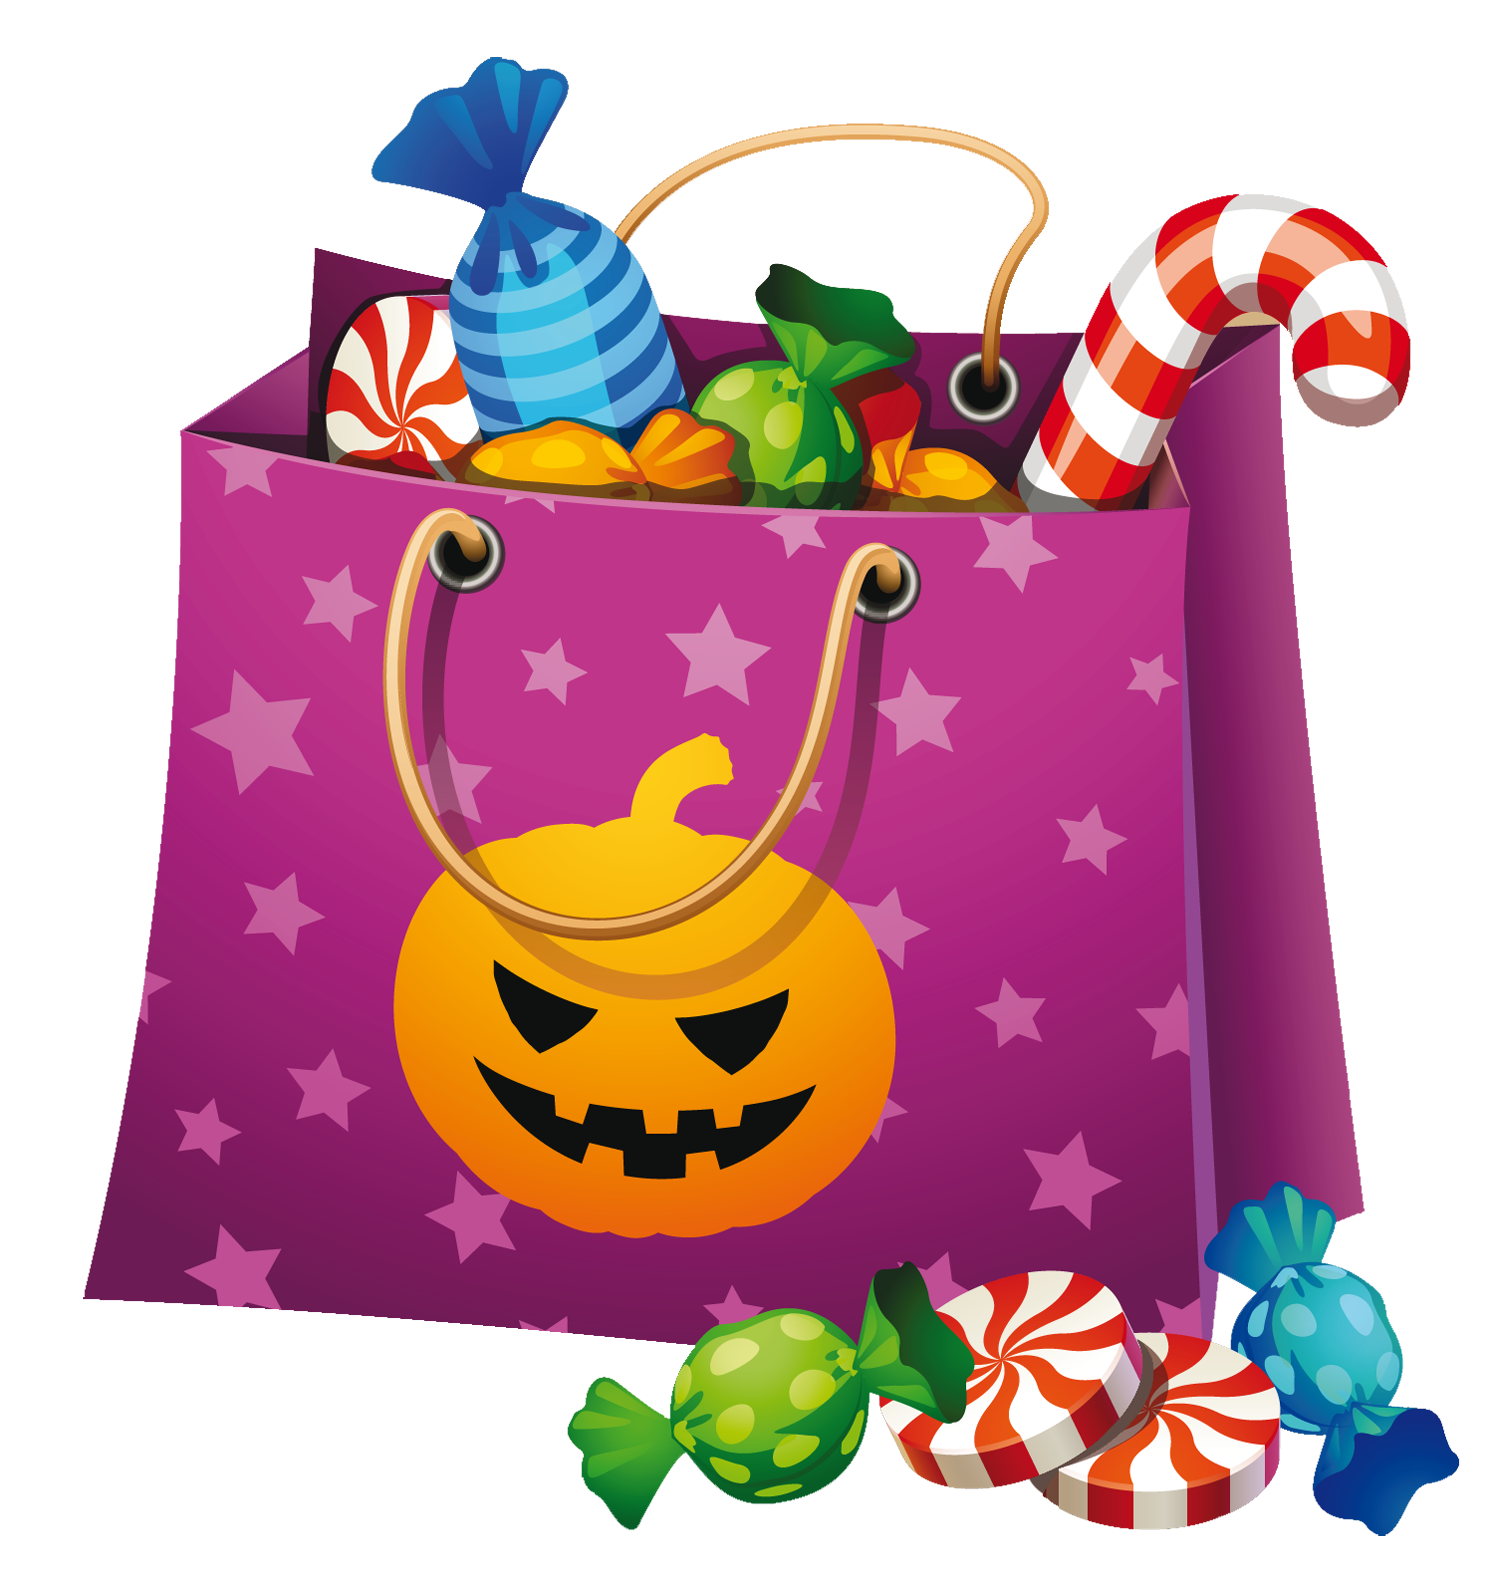 Bear halloween clipart jpg royalty free stock 28+ Collection of Halloween Candy Clipart Free | High quality, free ... jpg royalty free stock